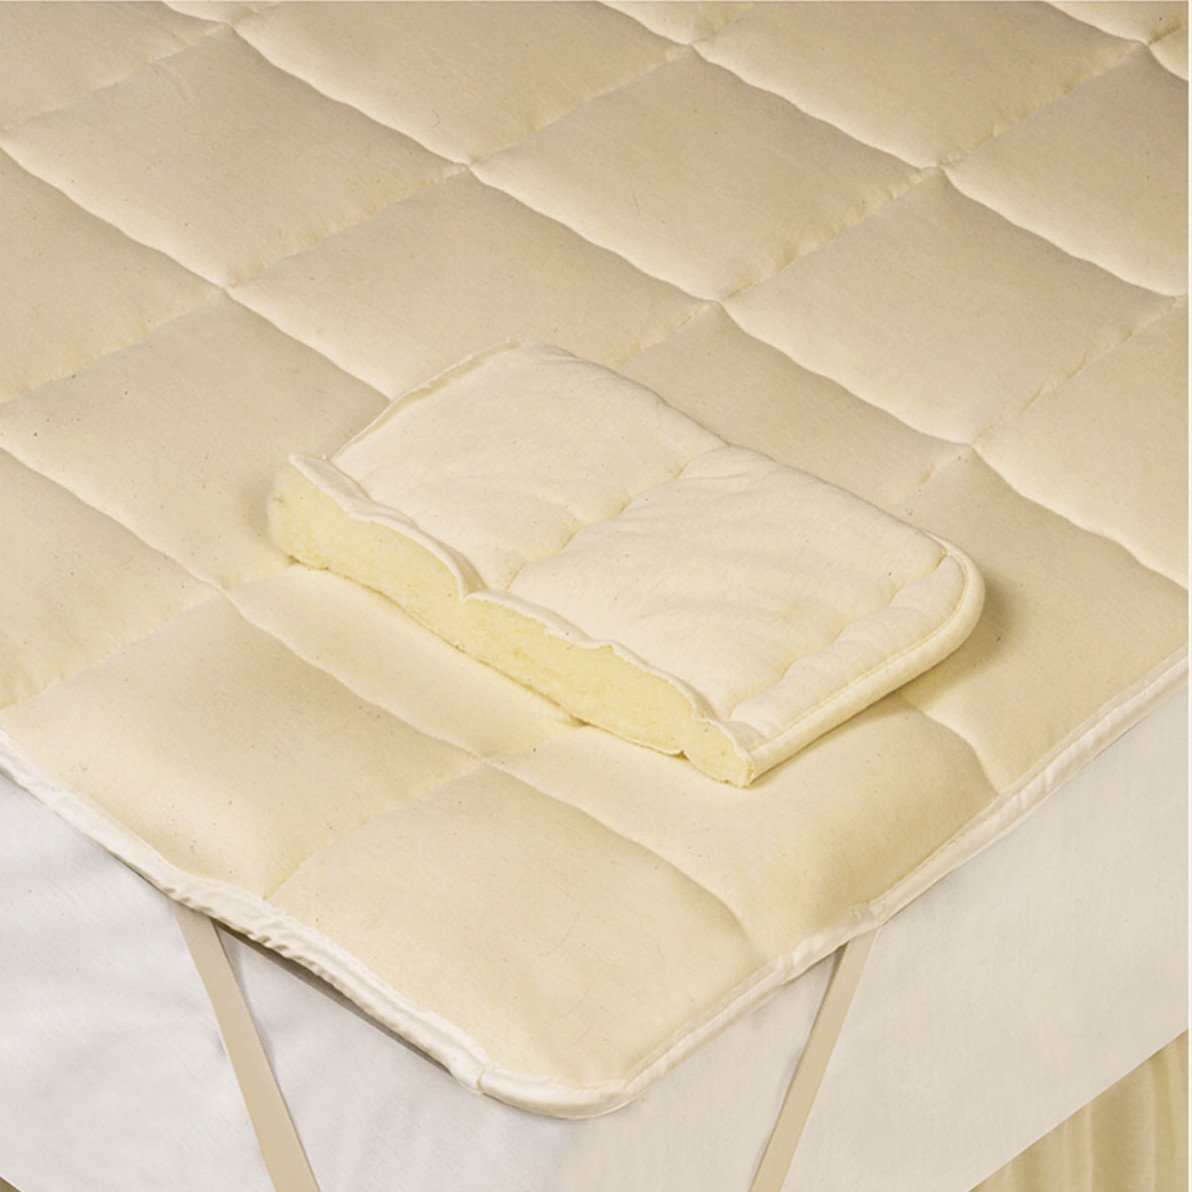 Best Rated Bed Bug Mattress Cover Home Furniture Design